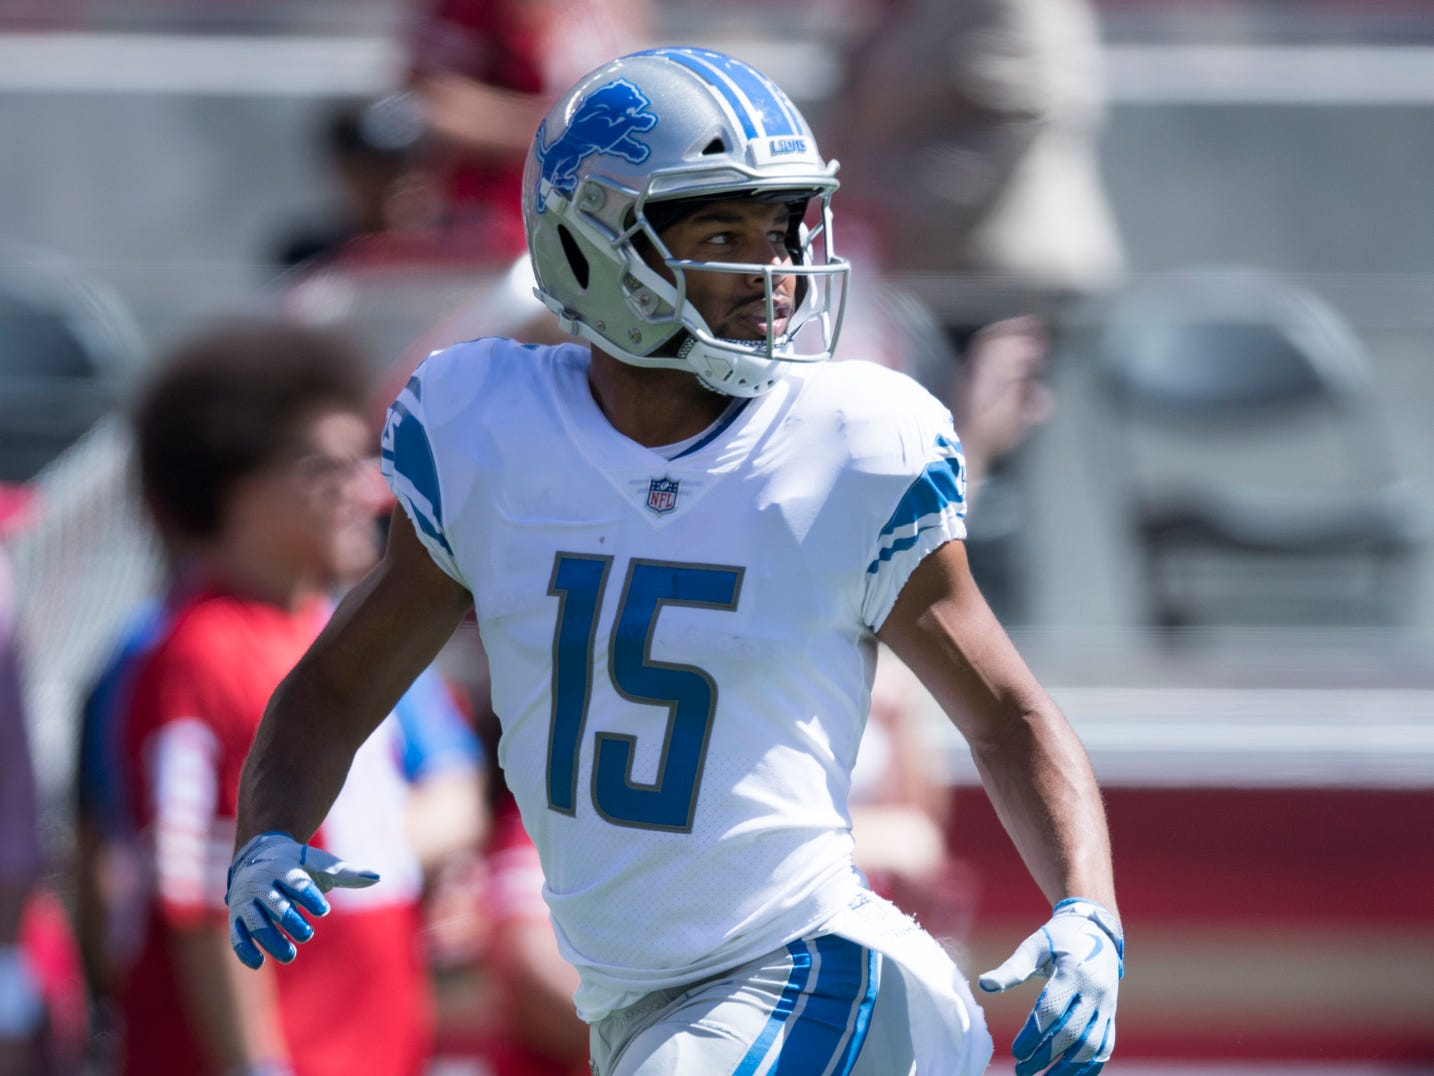 Lions wide receiver Golden Tate warms up before the game against the San Francisco 49ers on Sunday, Sept. 16, 2018 in Santa Clara, Calif.